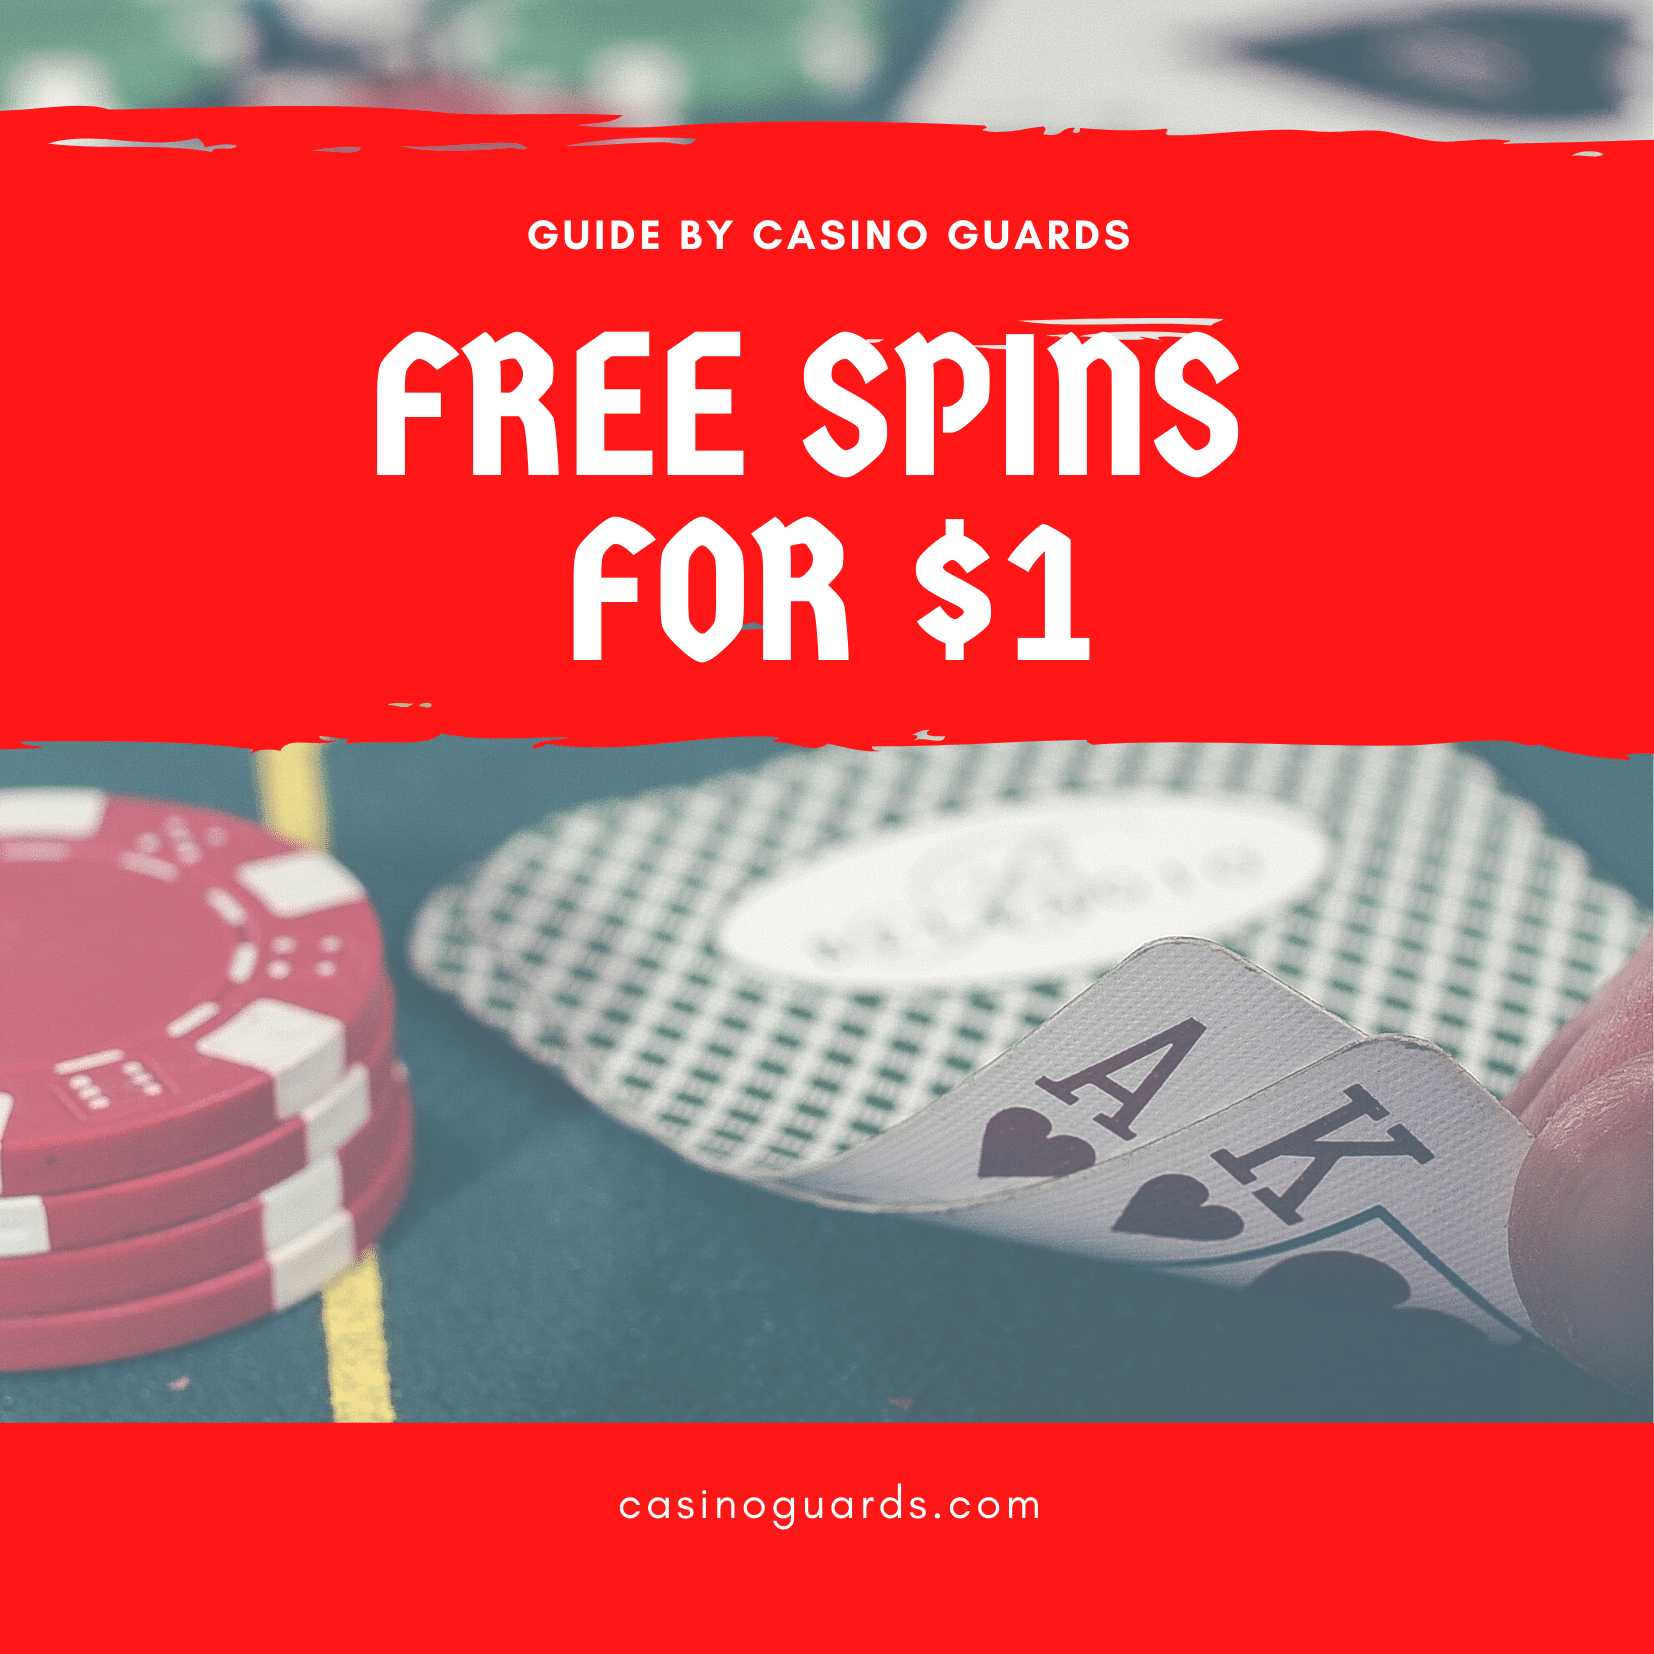 free spins for $1 canada